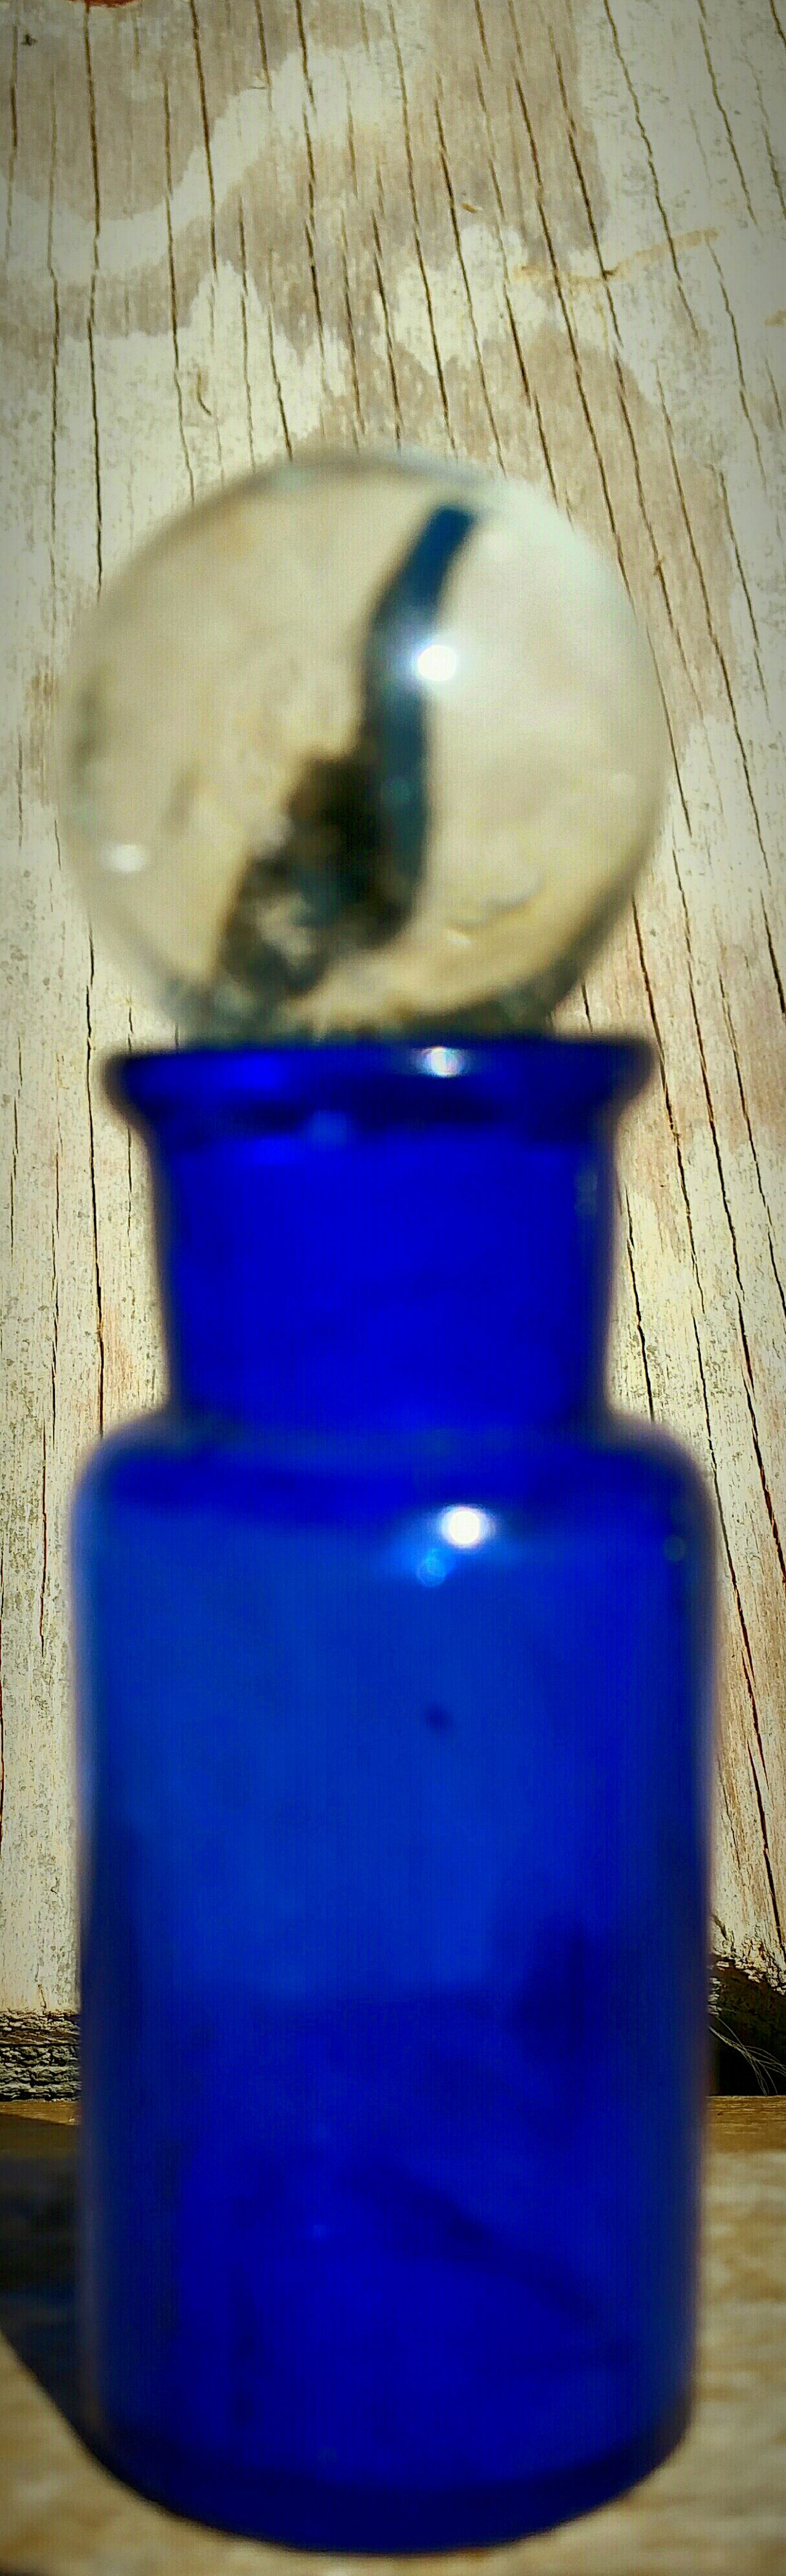 Blue Bottle Old Bottle Antique Blue Bottle Vintage Bottle Vintage Toys Toys Marble Blue Wave Cobolt Glass Cobolt Blue Old Colbolt Bottle Vintage Colbolt Blue Bottle Old Glass